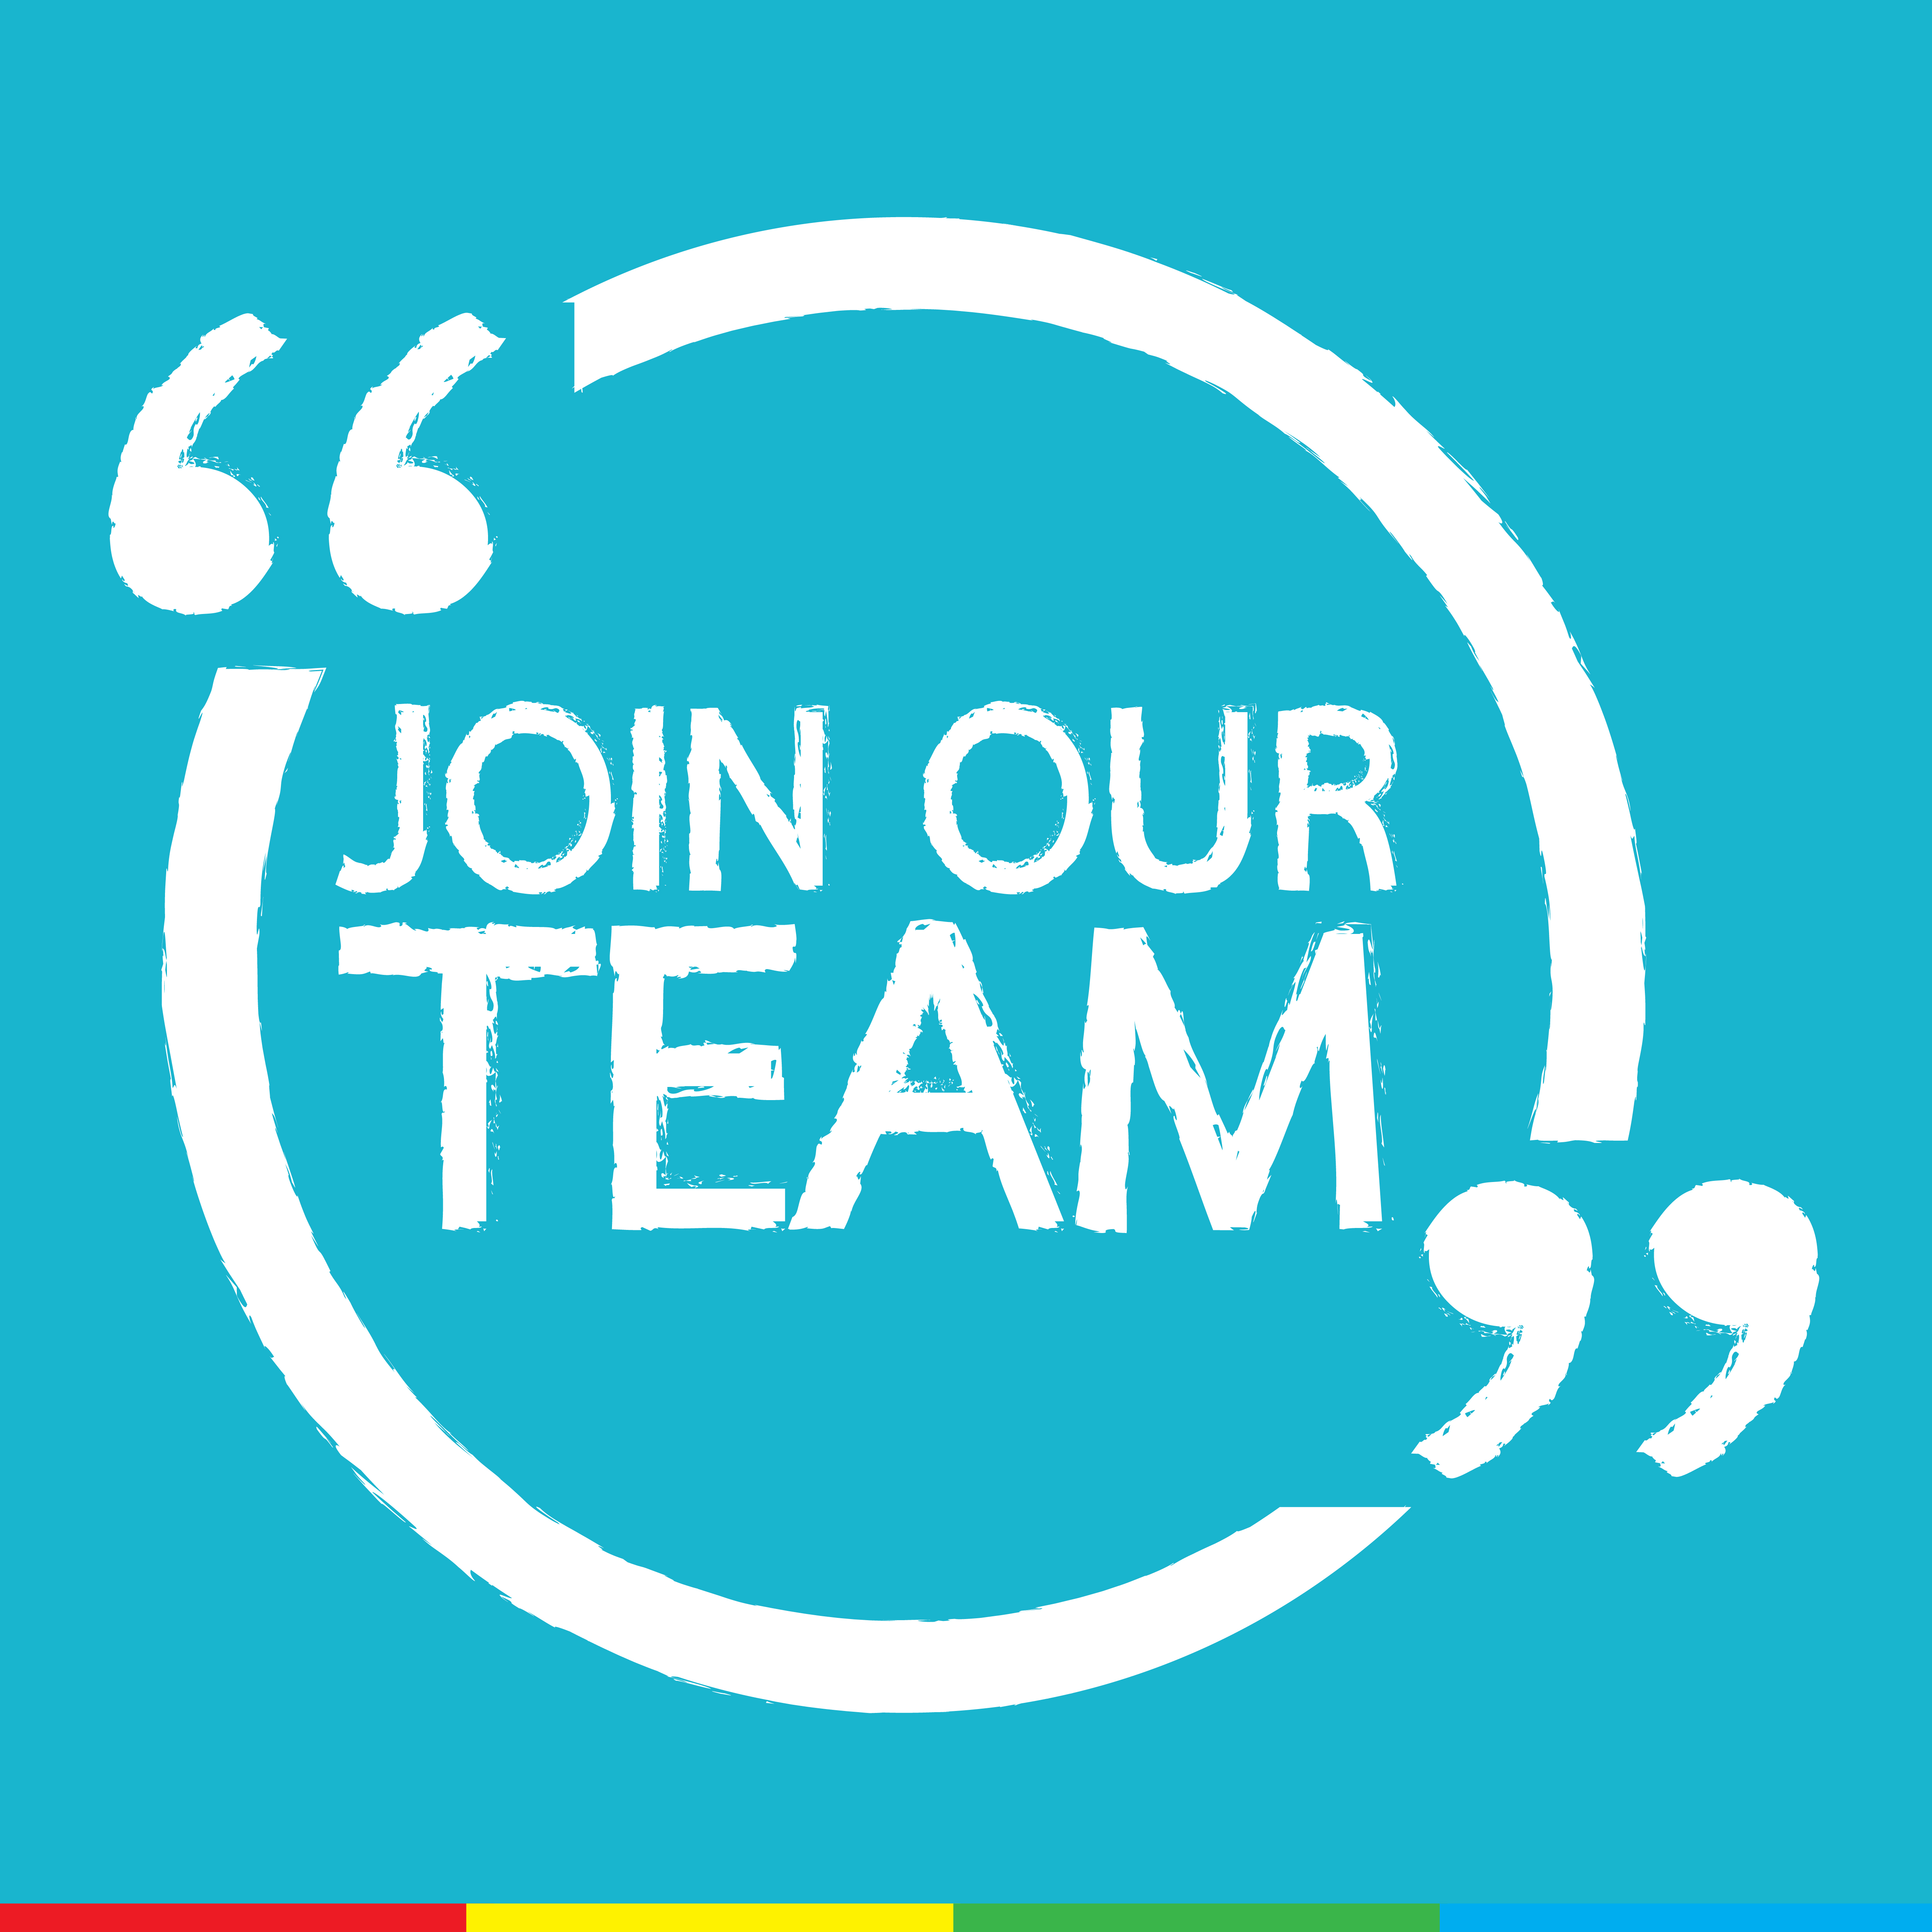 JOIN OUR TEAM Illustration design